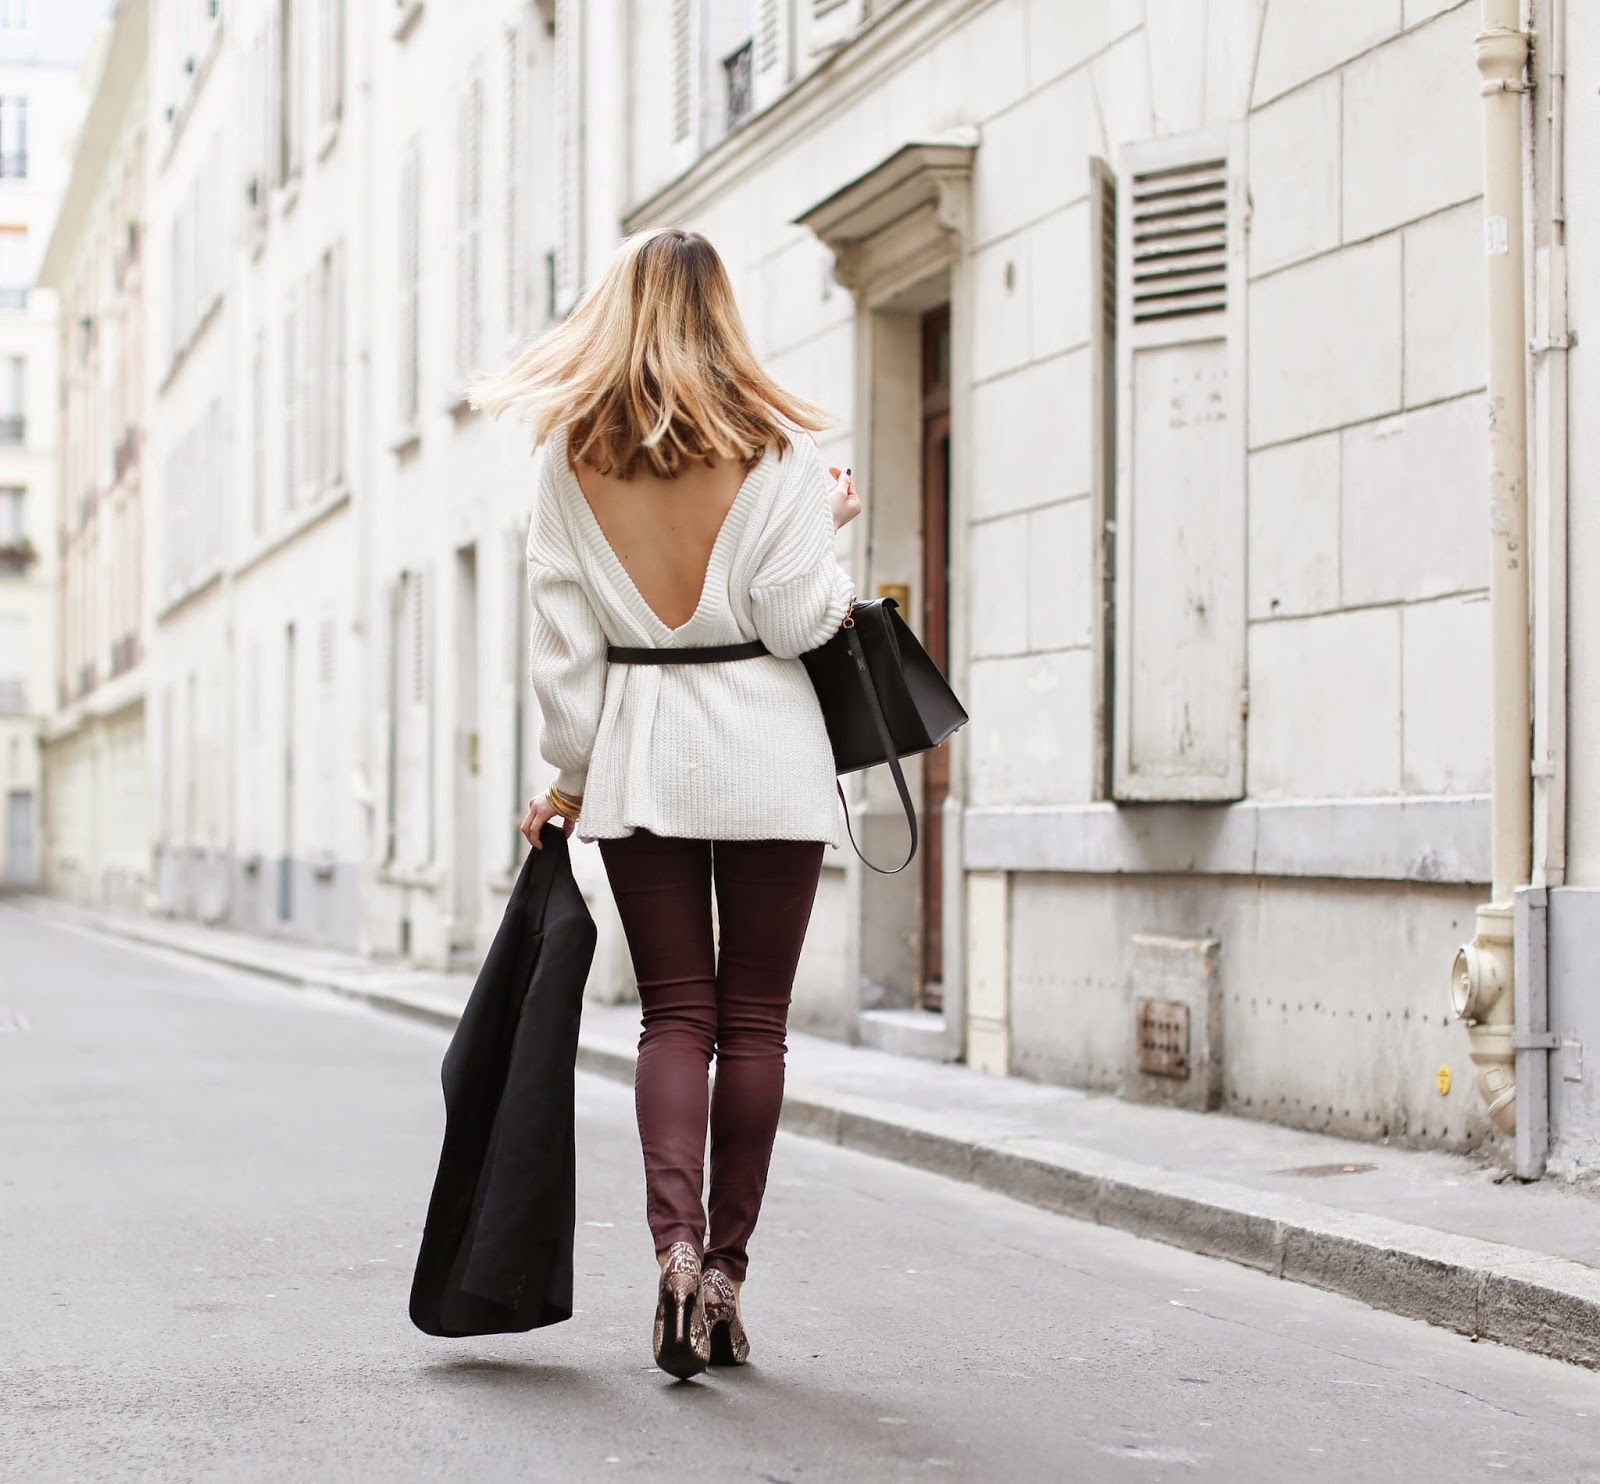 back, streetstyle, fashion blogger, paris, zara, hermès, vanessa bruno